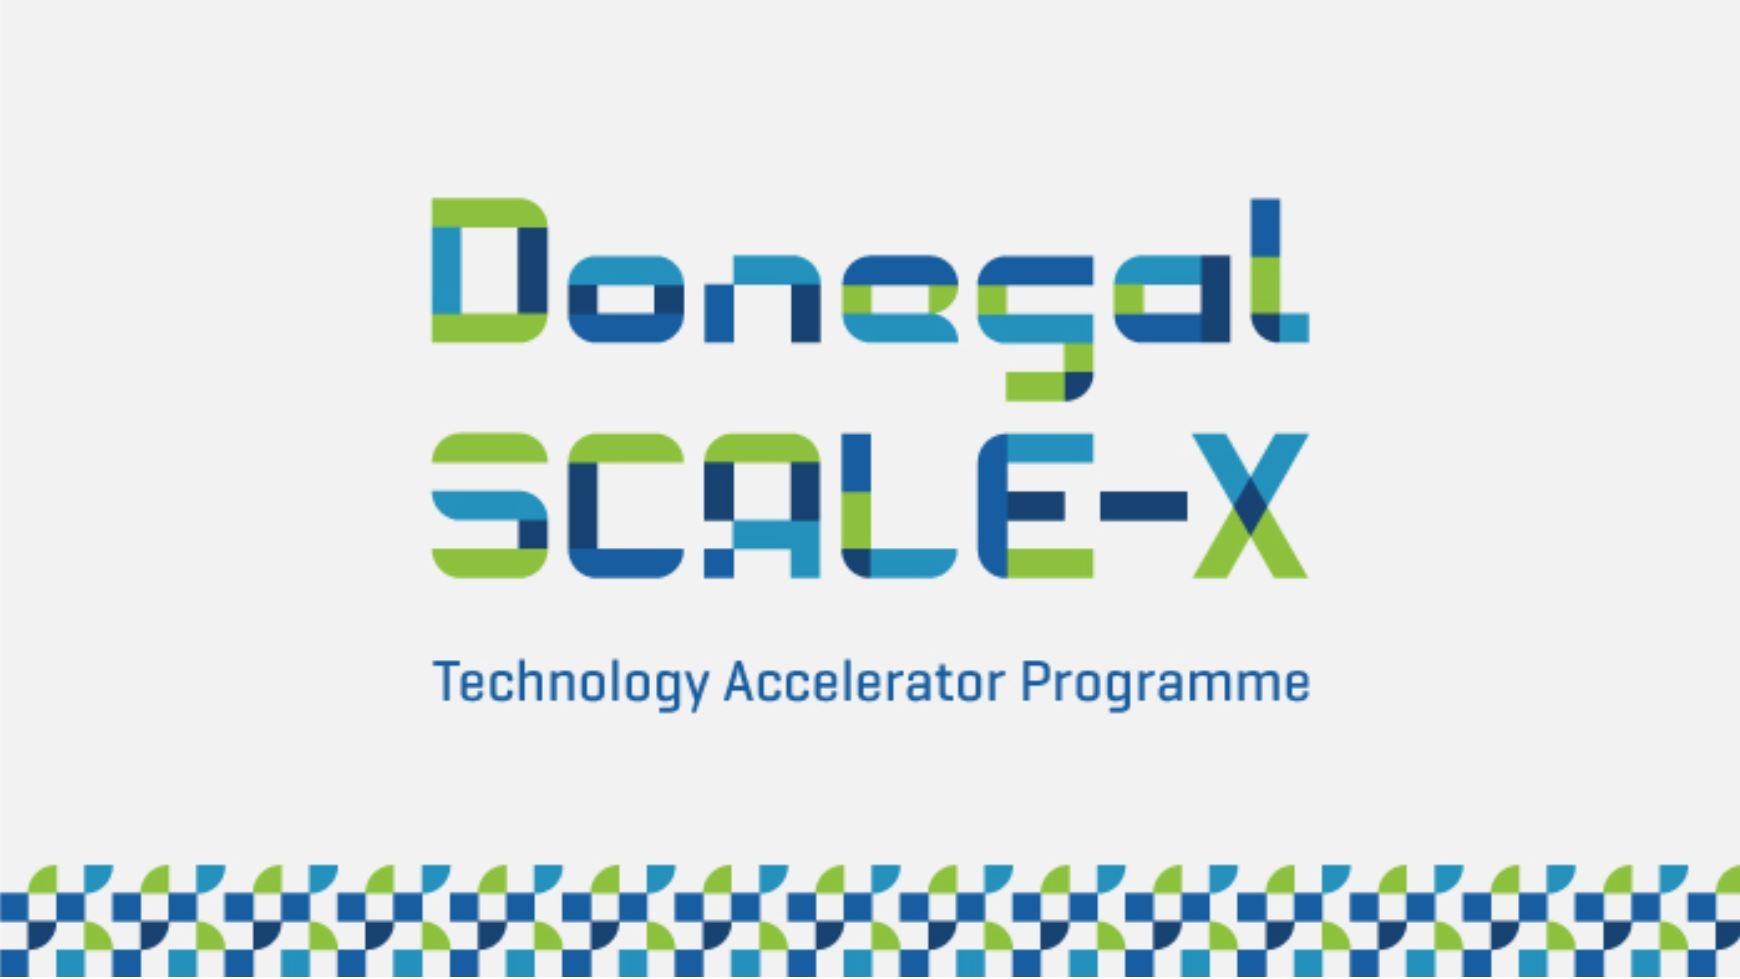 Donegal SCALE-X: Technology Accelerator Programme